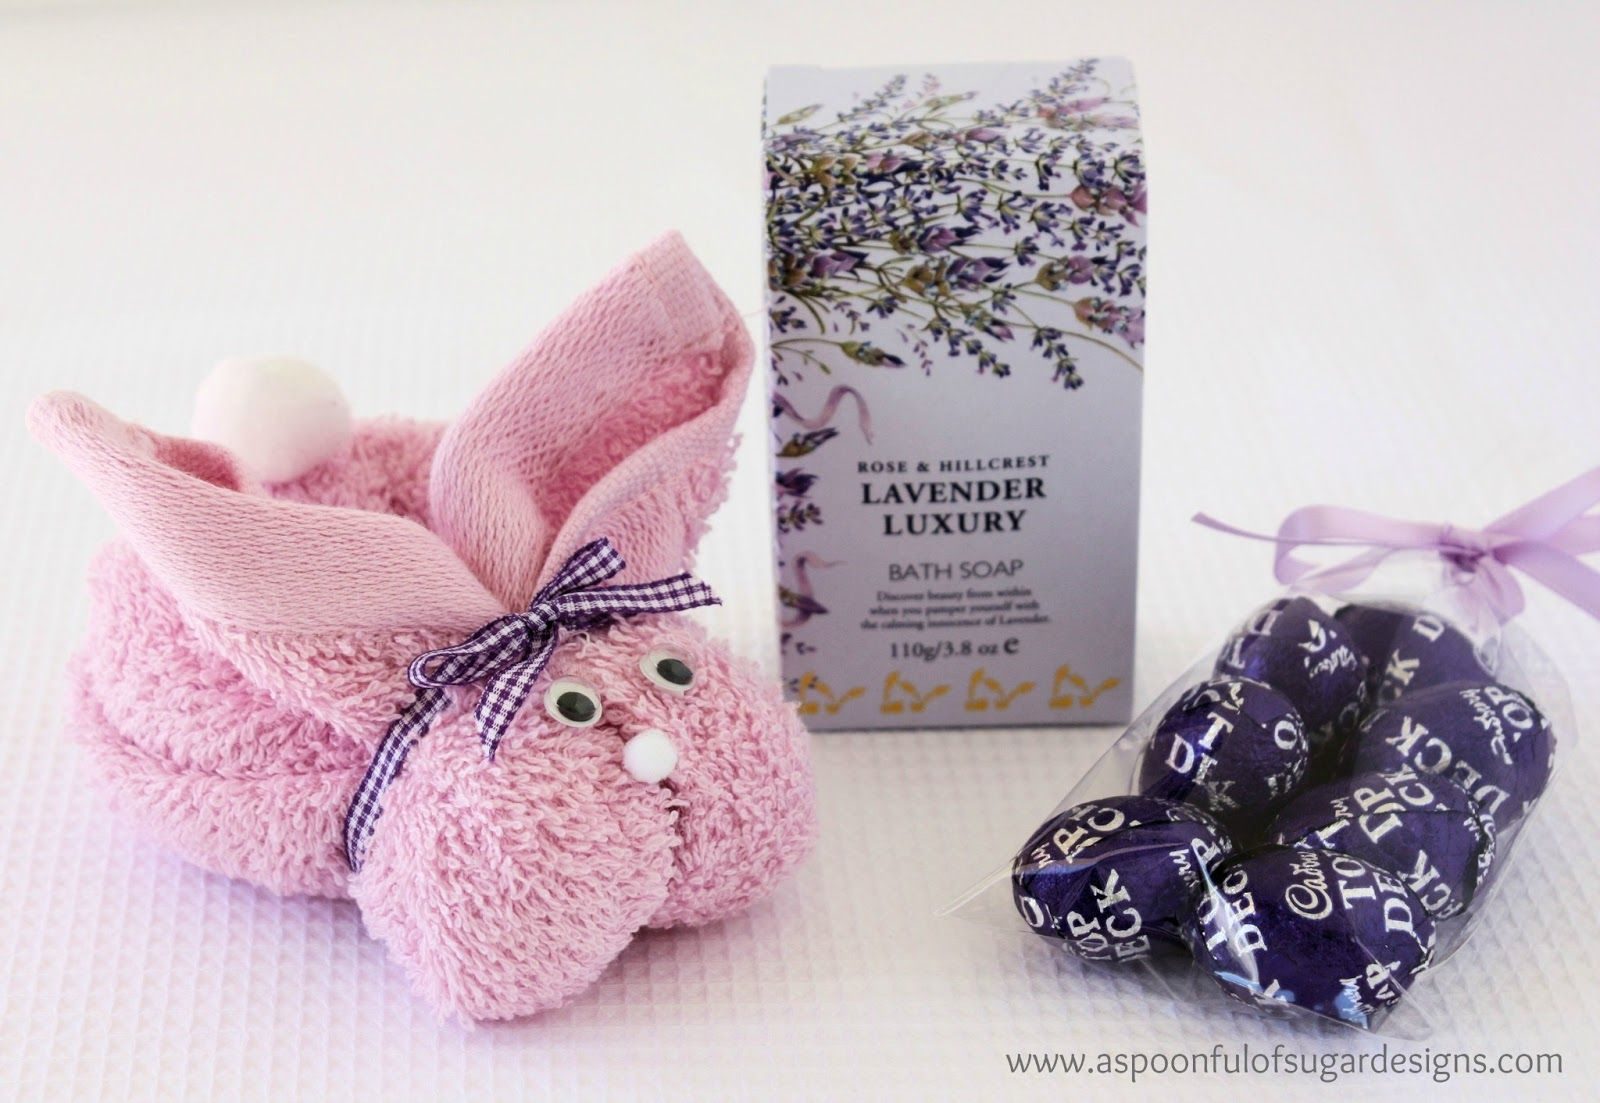 Easter gift ideas bunny fold tip towllavender luxury bath soap easter gift ideas bunny fold tip towllavender luxury bath soapperfect for the bath while company is over or giving to someone negle Image collections